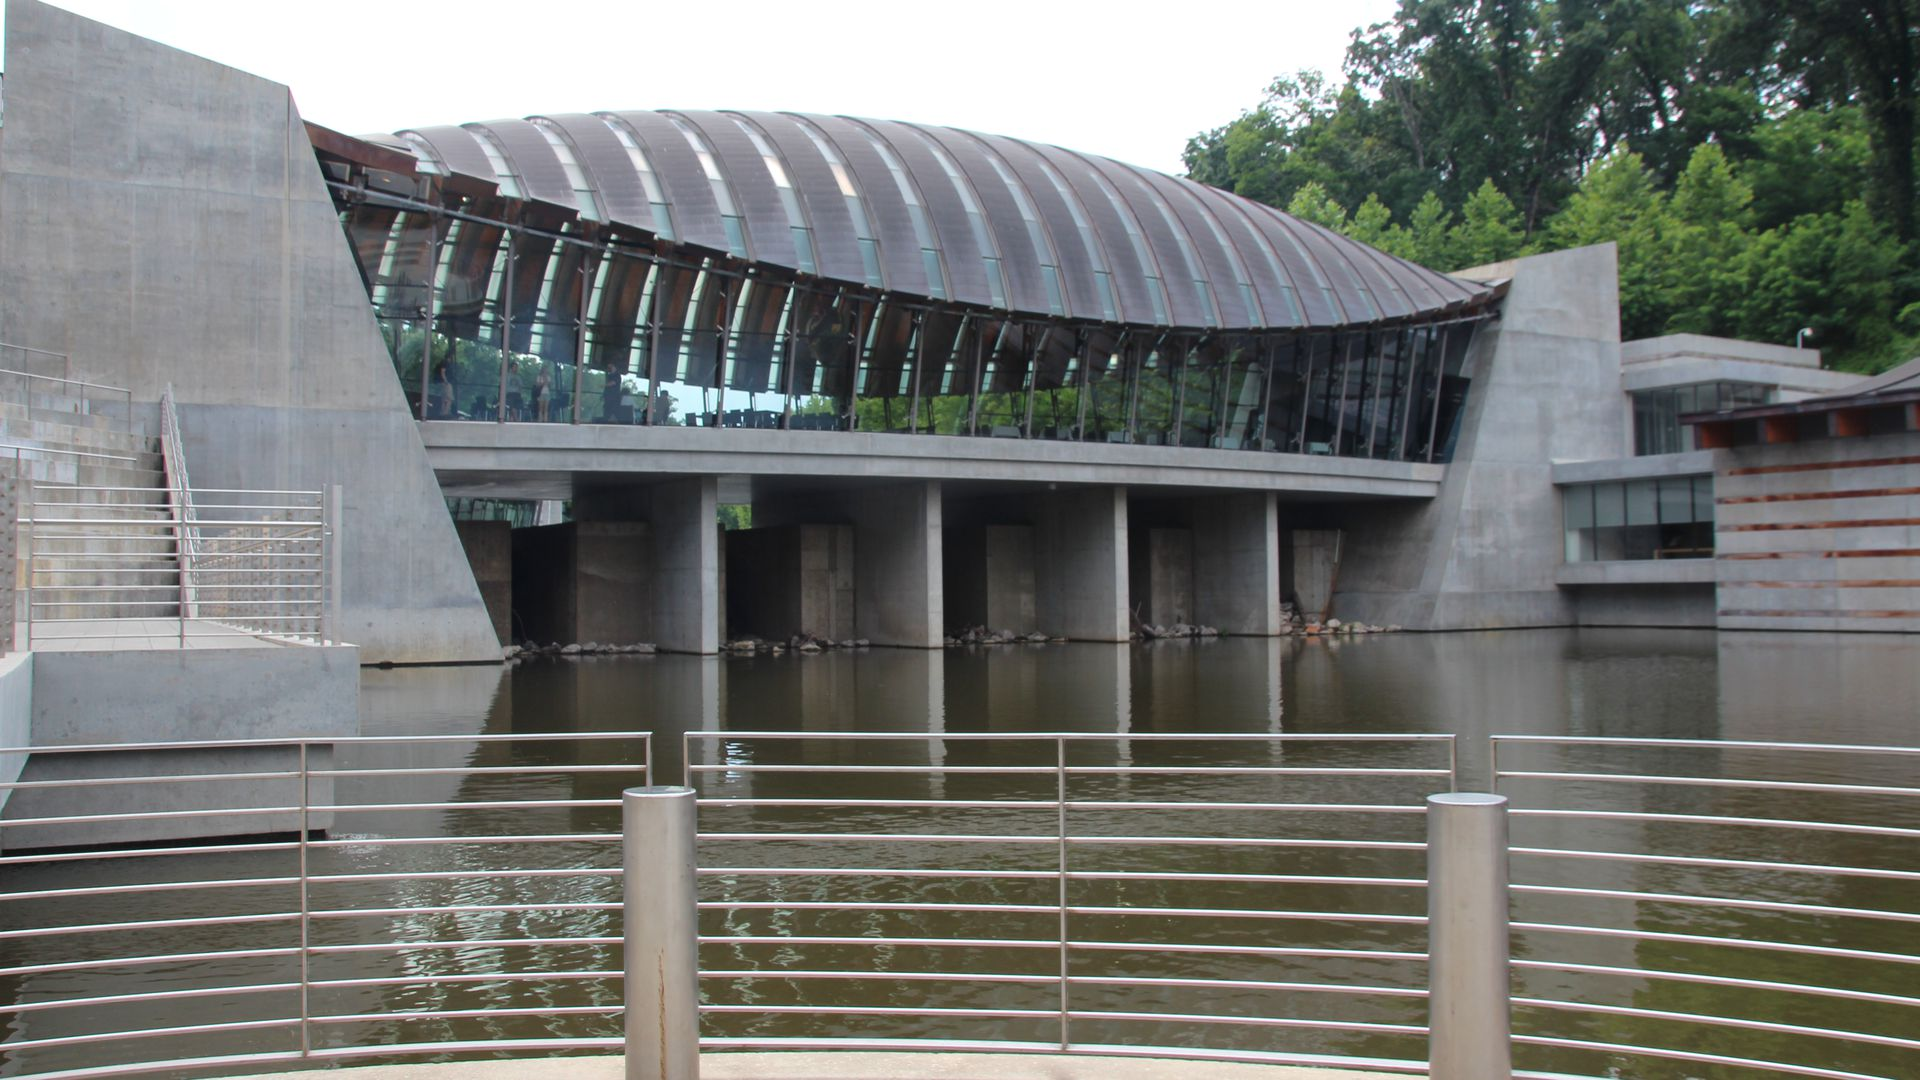 A view of the outside of the Crystal Bridges art museum, surrounded by a body of water.